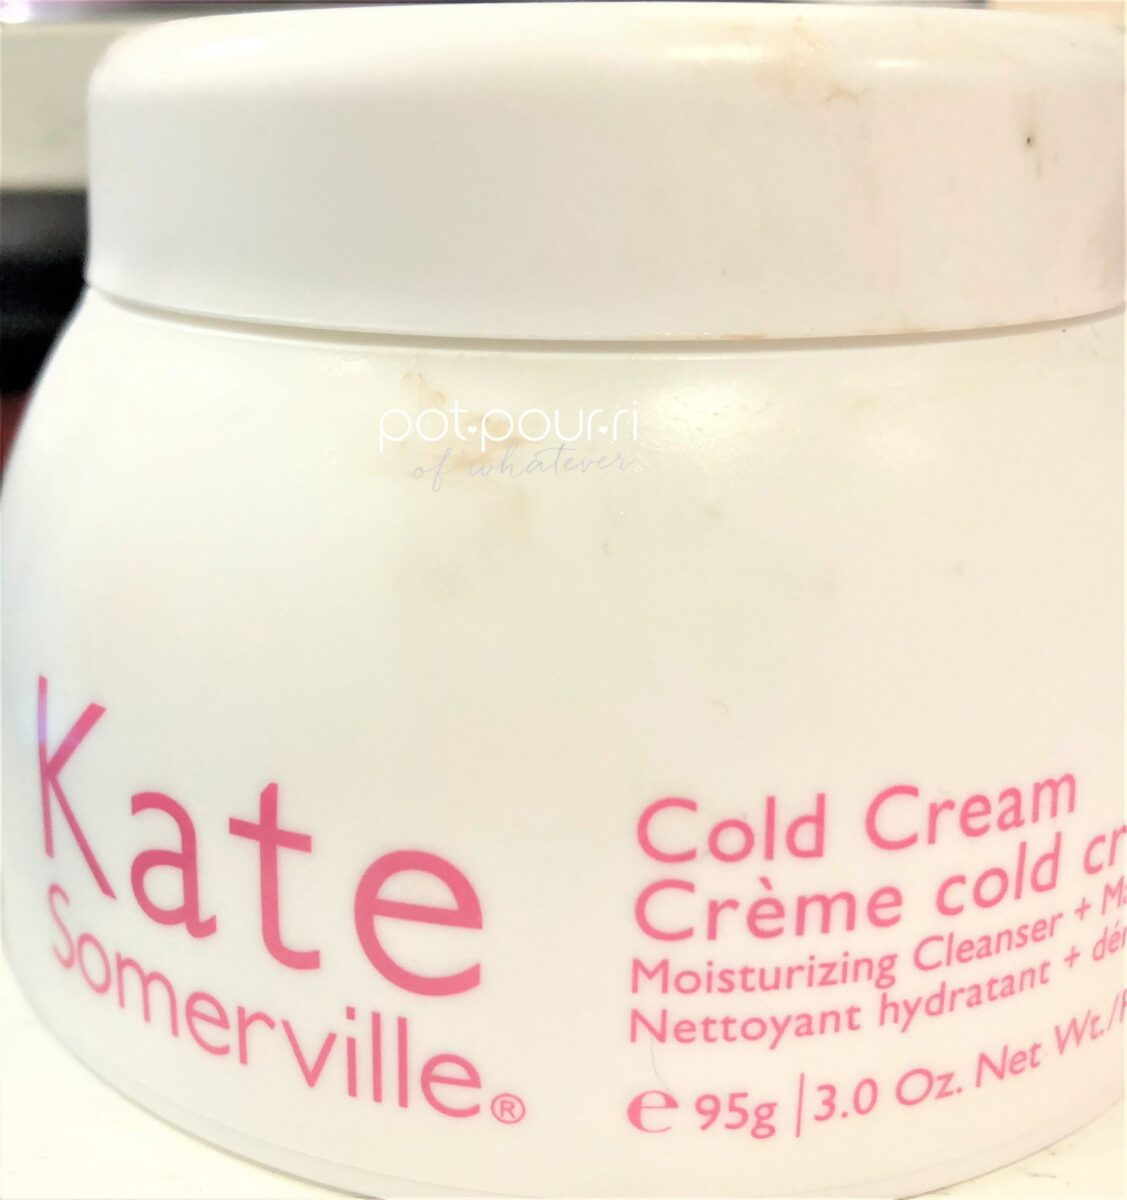 KATE-SOMERVILLE-COLD-CREAM-JAR